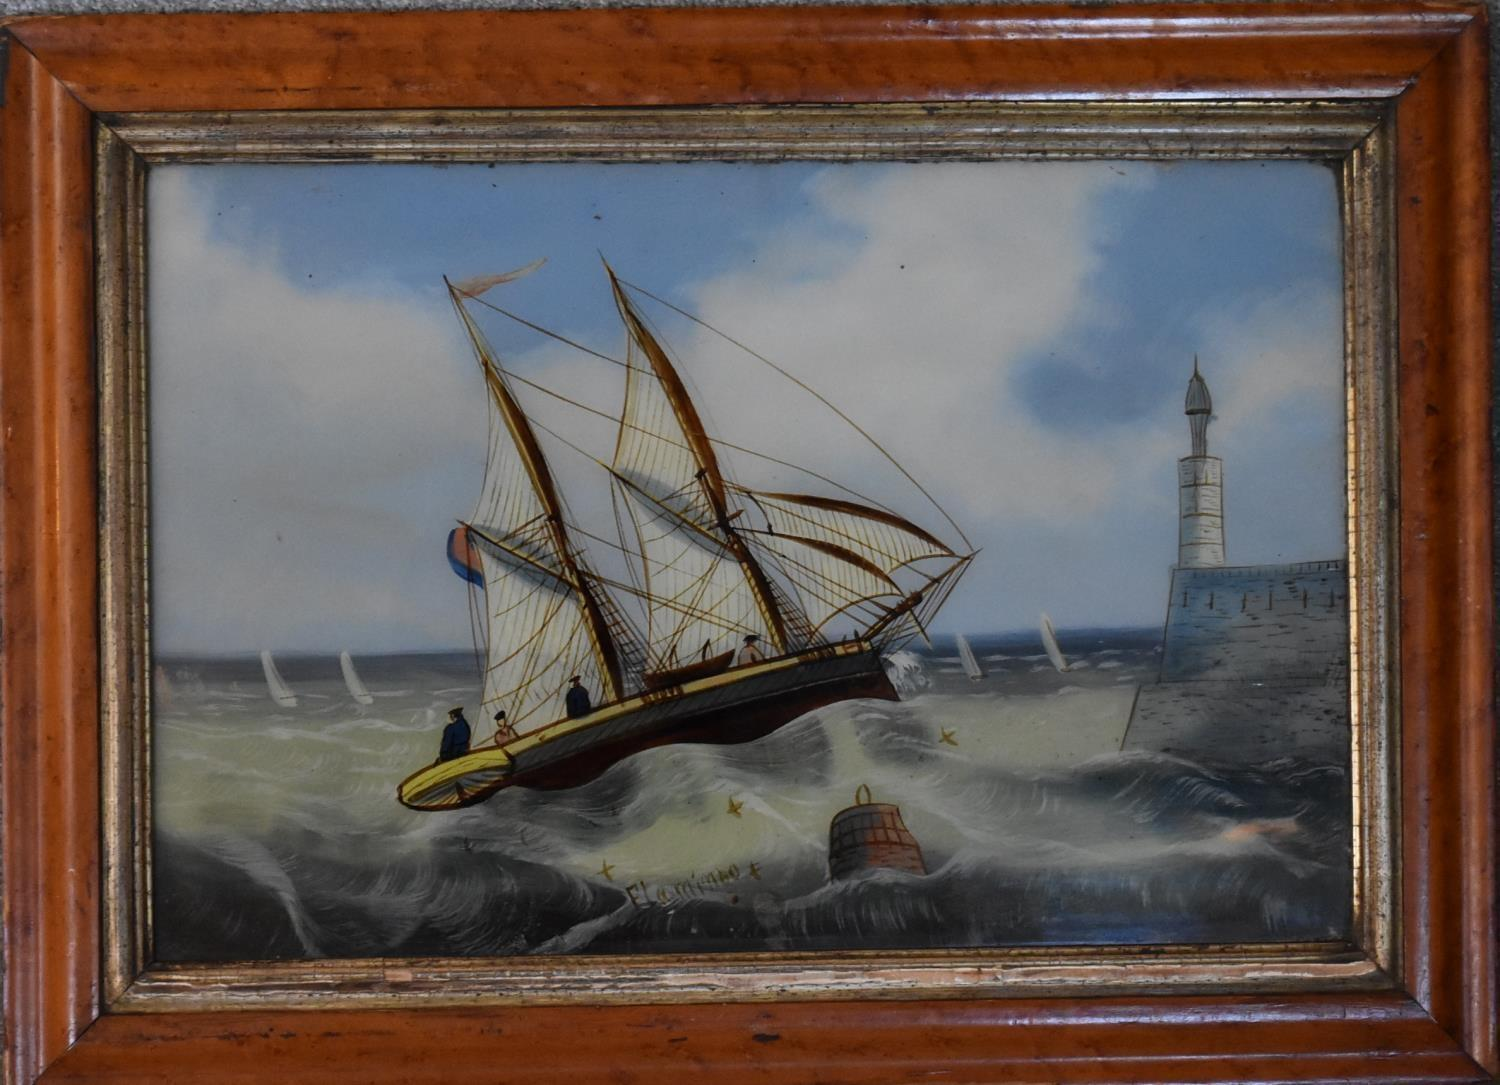 A 19th century gilt framed oil on board, sheep herder and a 19th century painting on glass, - Image 2 of 4